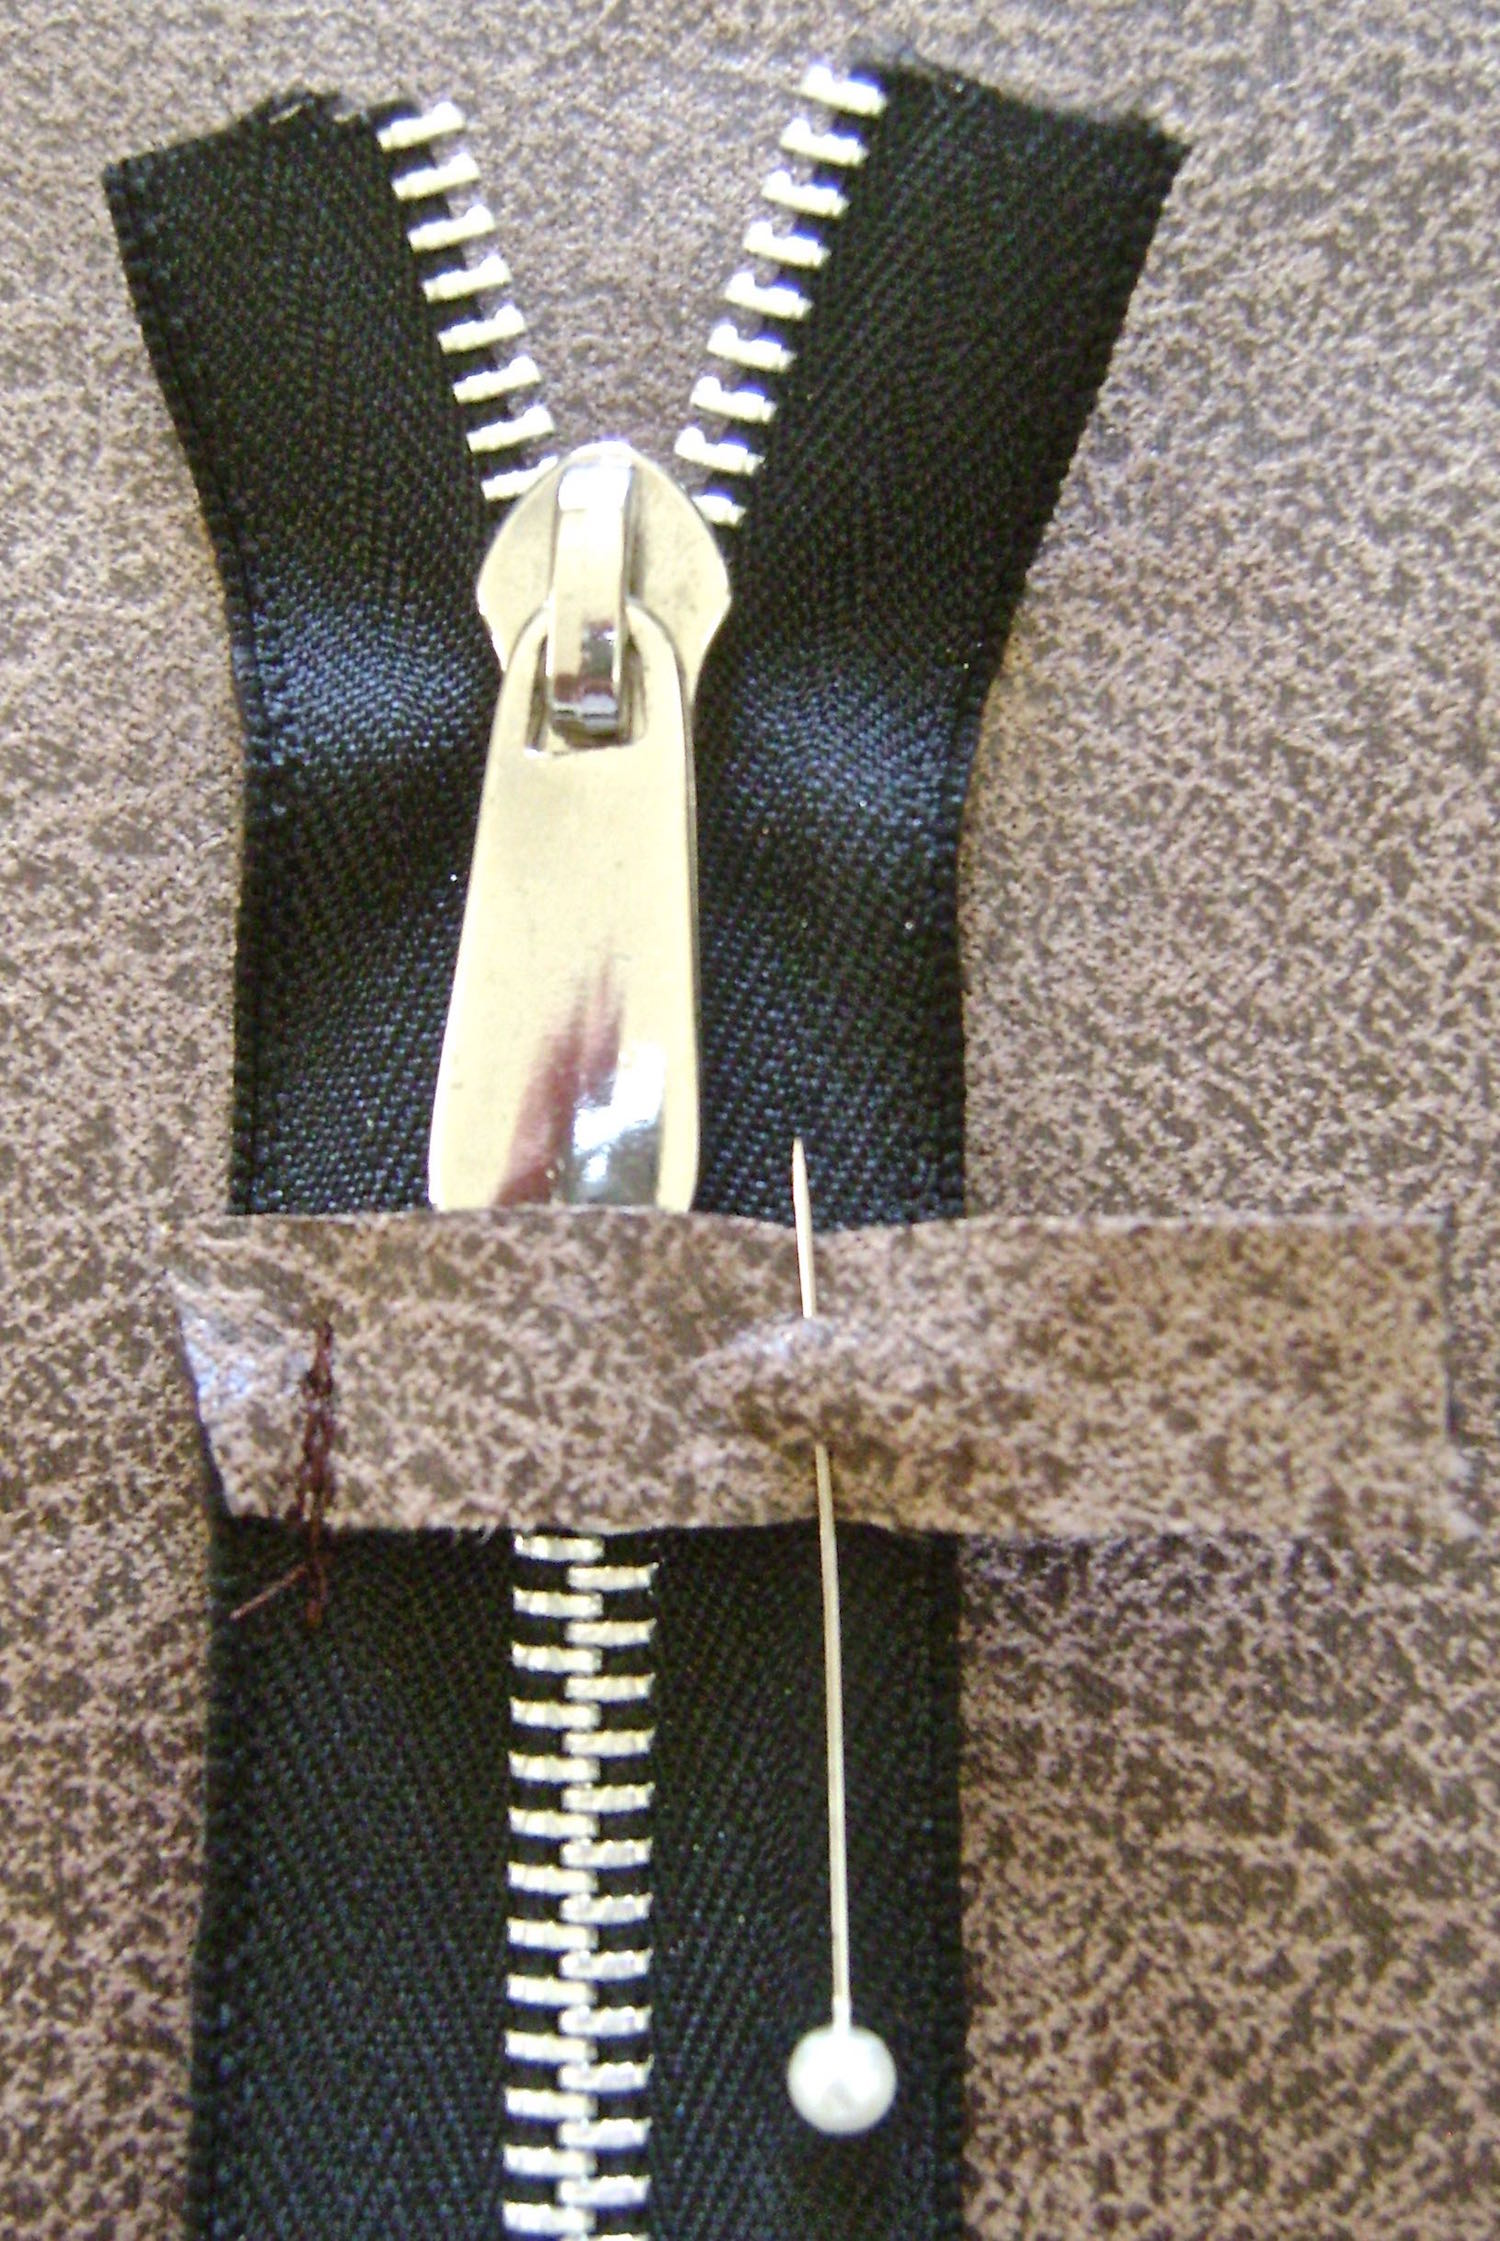 """step 8 - Pin the other stop side to the zipper and slip the decorative pull under the stop. Move the pull down partially opening to get it on the other side of the stop. Sew the pinned stop to the zipper. Trim the zipper ends about .25"""" inside the outer edges of the stops."""